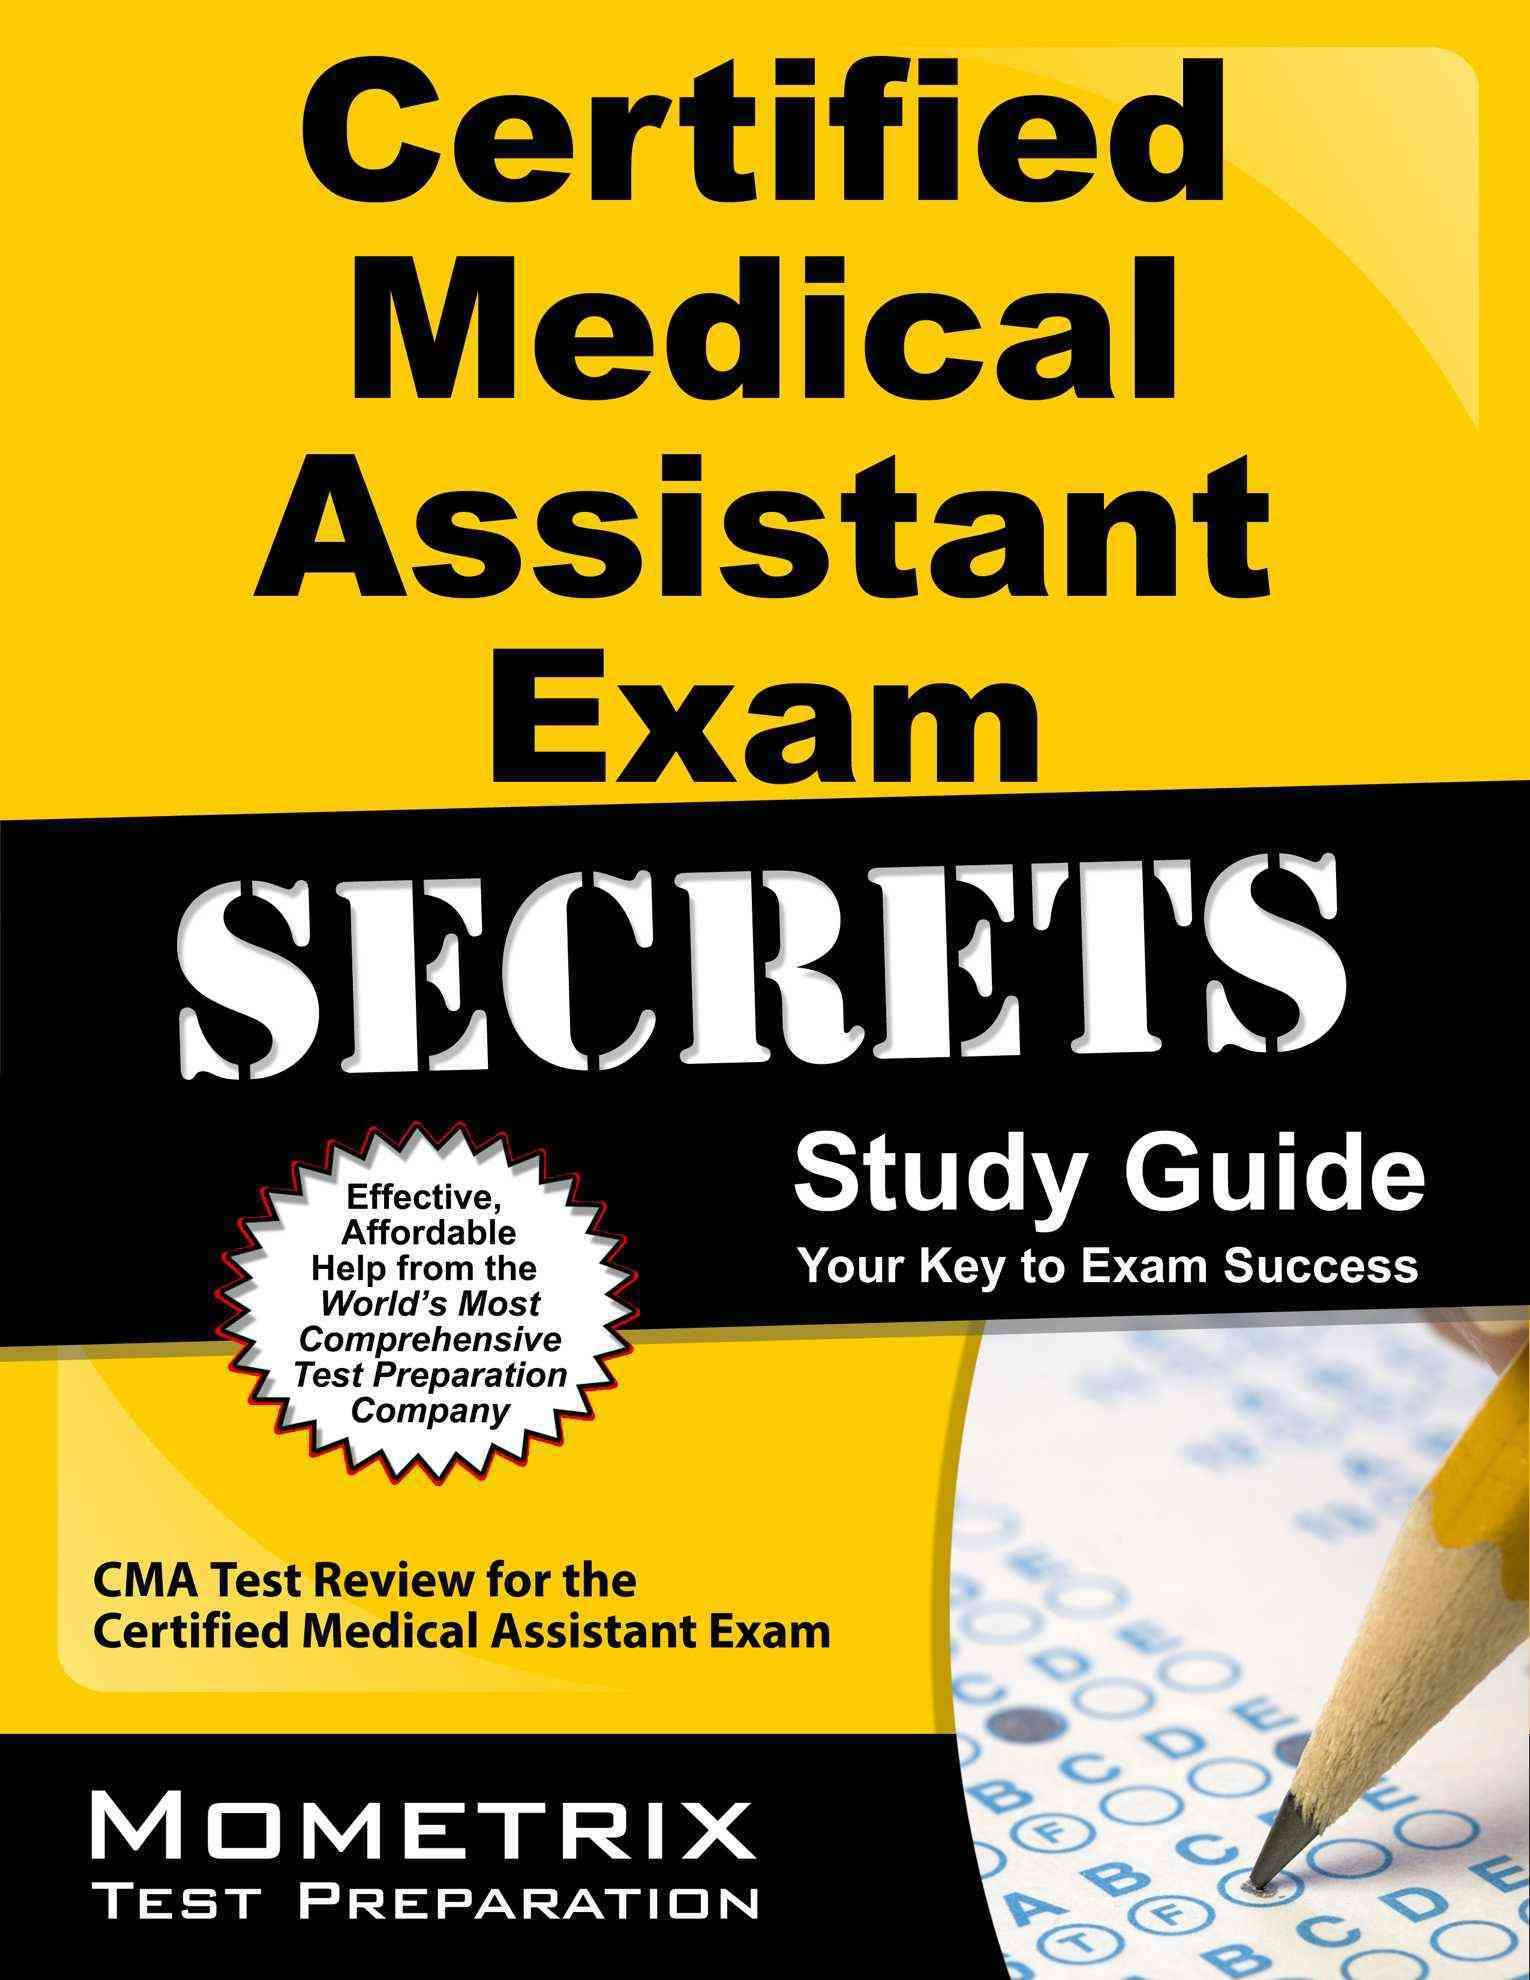 Certified medical assistant exam secrets your key to exam success get started studying with our free afaa practice test questions these questions will help you increase your afaa test score xflitez Image collections